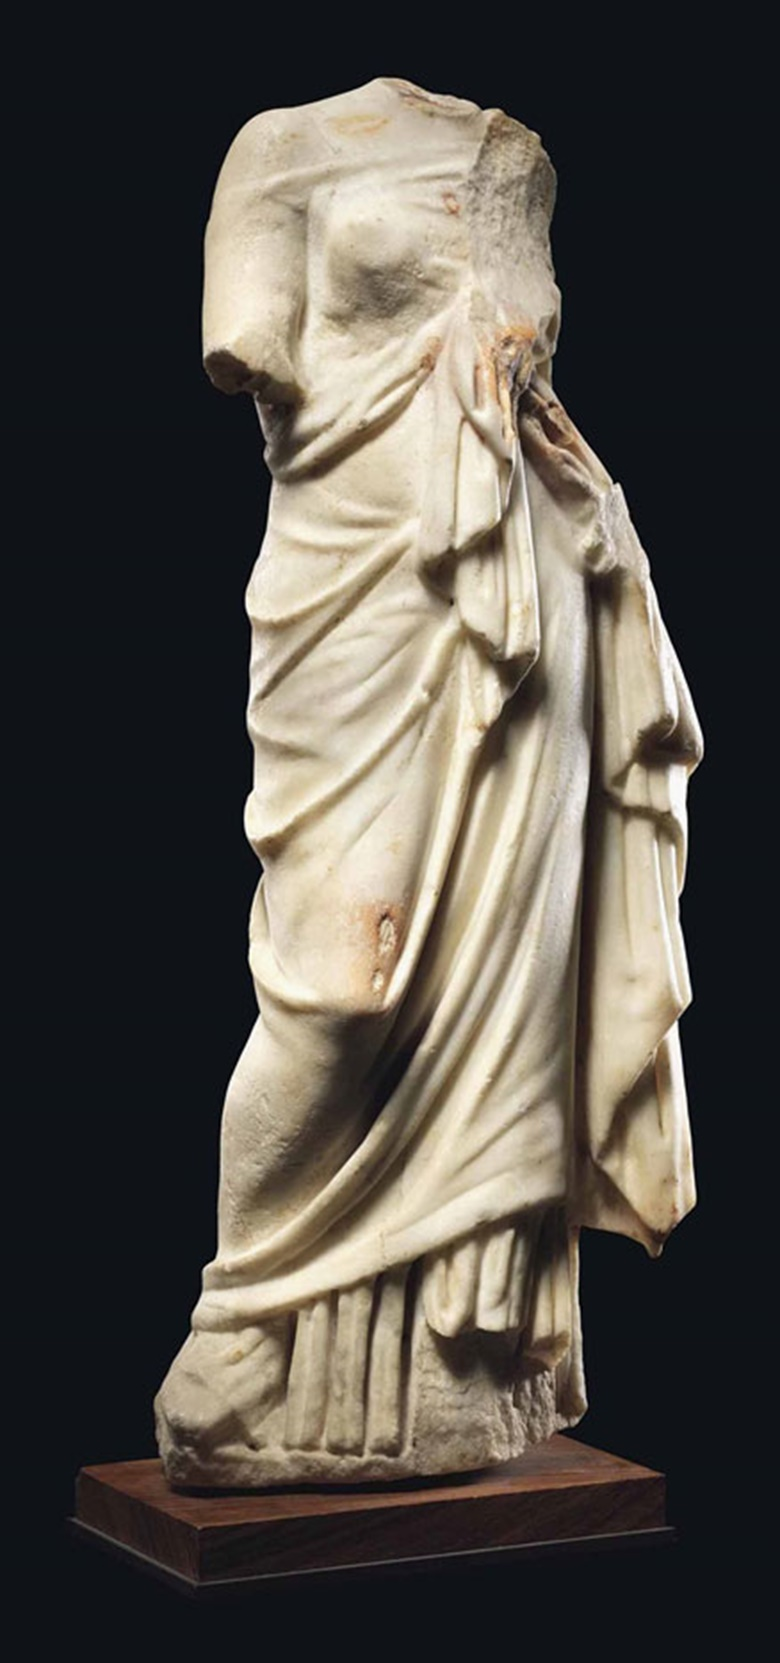 A Roman marble goddess, circa 2nd-3rd century AD. 22 in (56 cm) high. This lot was offered inAntiquitieson 6 July 2016 at Christie's in London, King Street and sold for £18,750